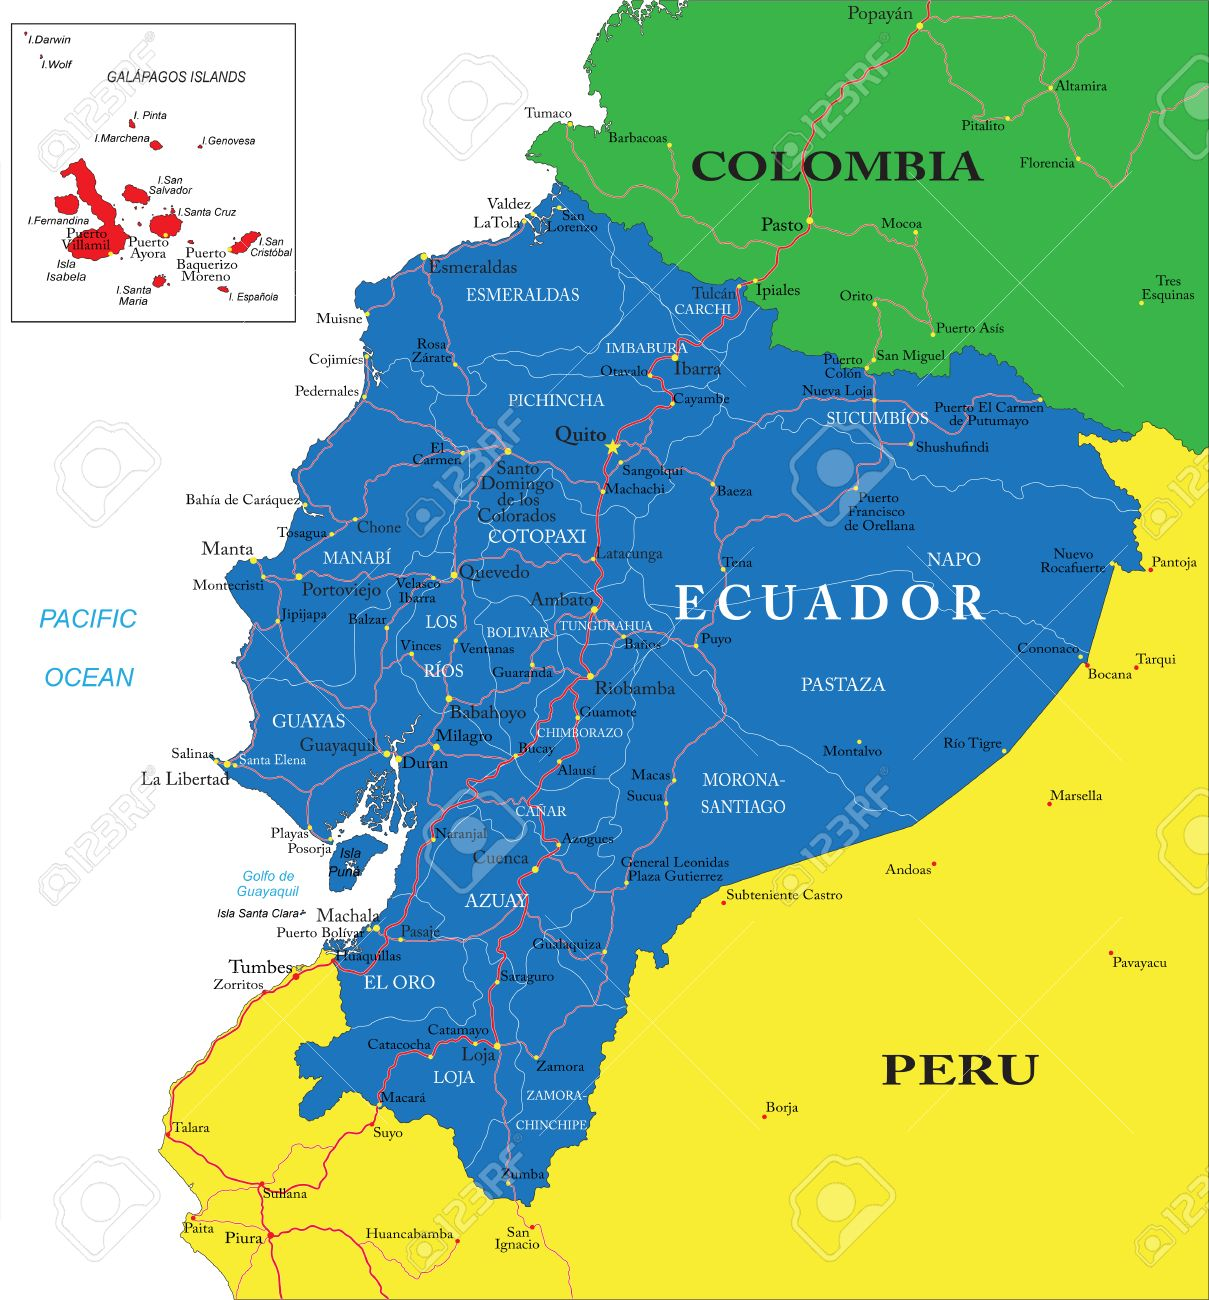 Ecuador map on hungary map, belize map, czech republic map, puerto rico map, dominican republic map, panama map, romania map, el salvador map, equator map, greece map, united states map, spain map, brazil map, costa rica map, aruba map, china map, colombia map, bulgaria map, canada map, portugal map, french guiana map, belarus map, croatia map, cuba map, chile map, peru map, ivory coast map, mexico map, columbia map, galapagos map, argentina map, bolivia map, venezuela map,